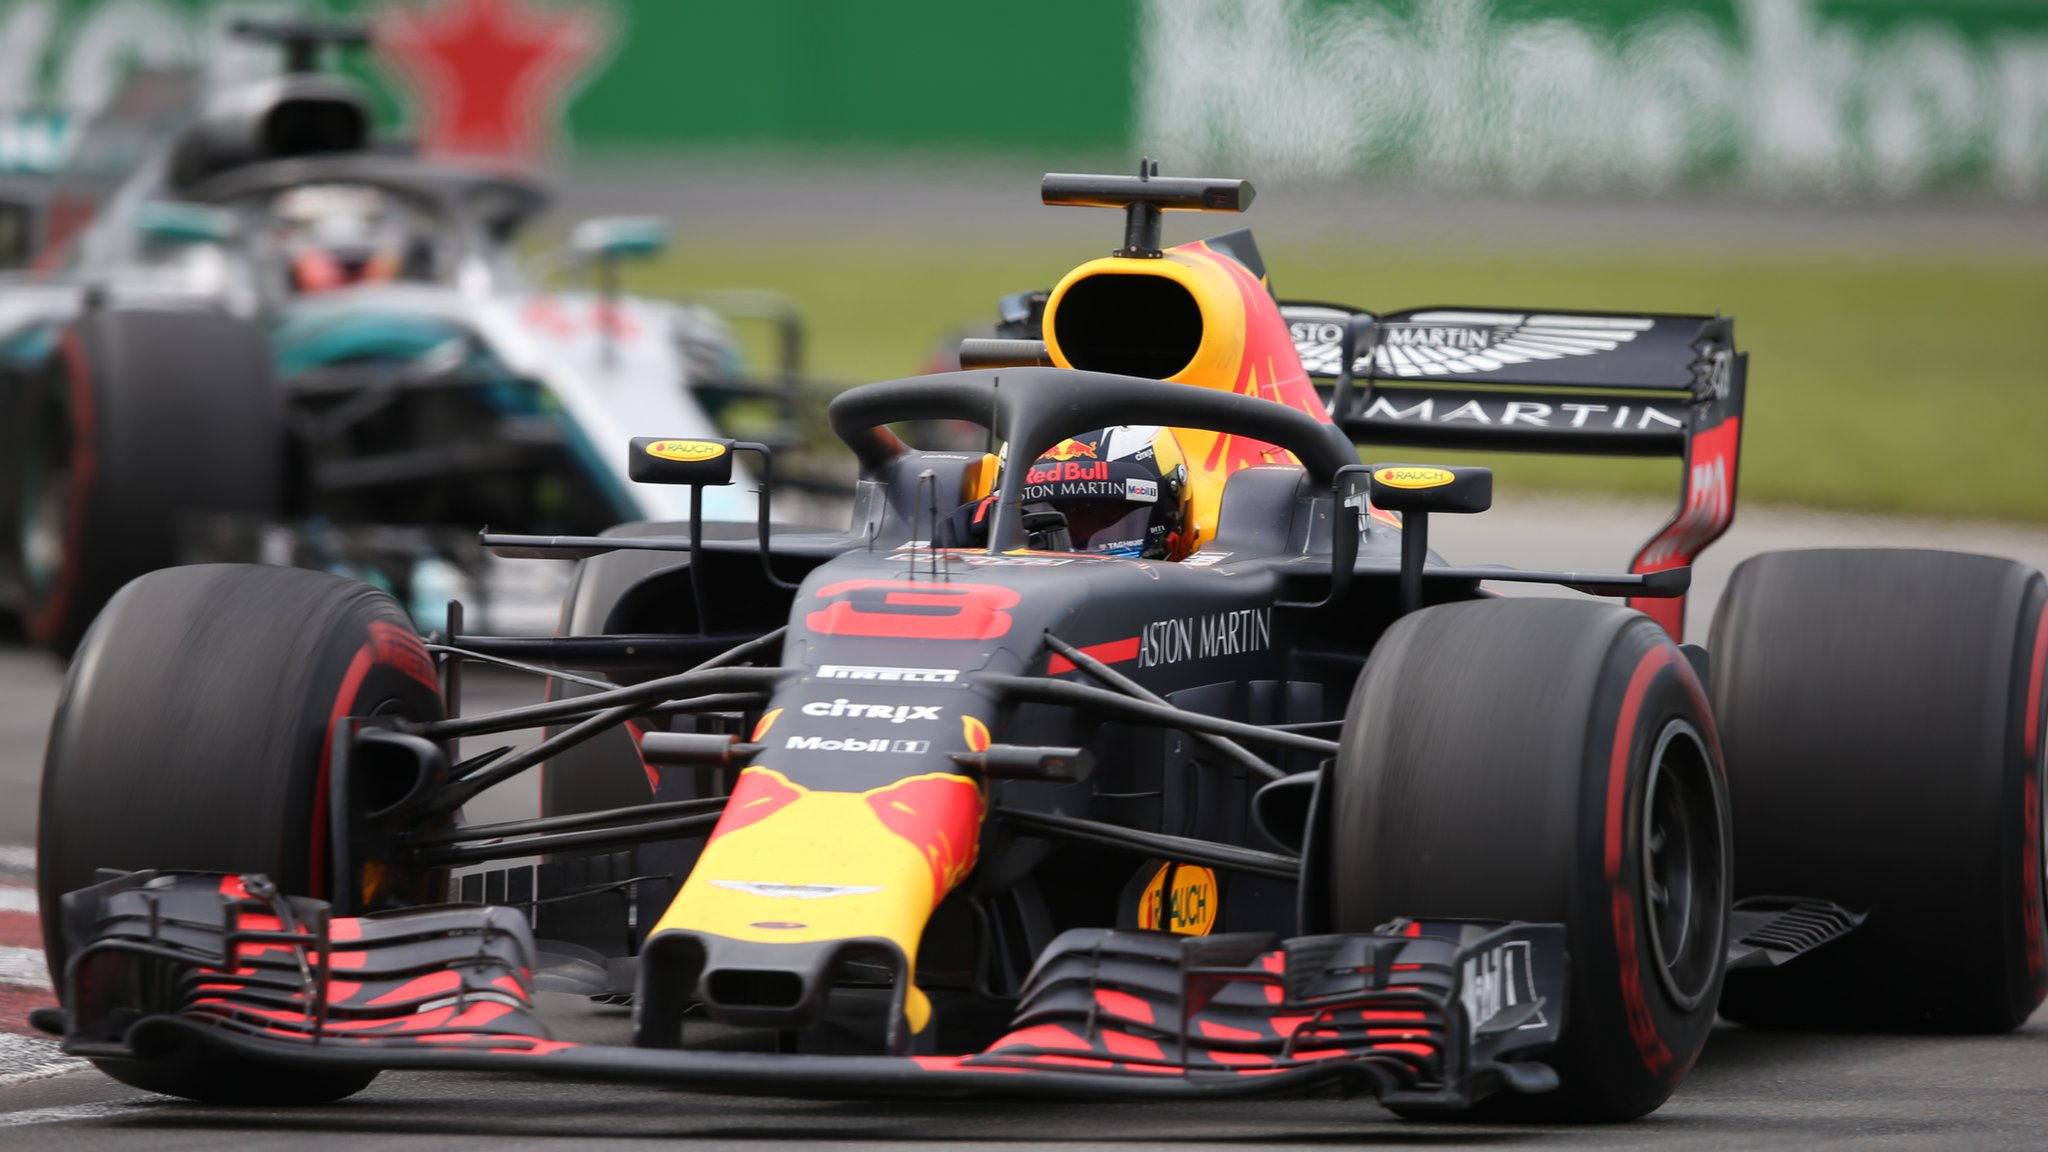 Red Bull to switch engines from Renault to Honda from 2019